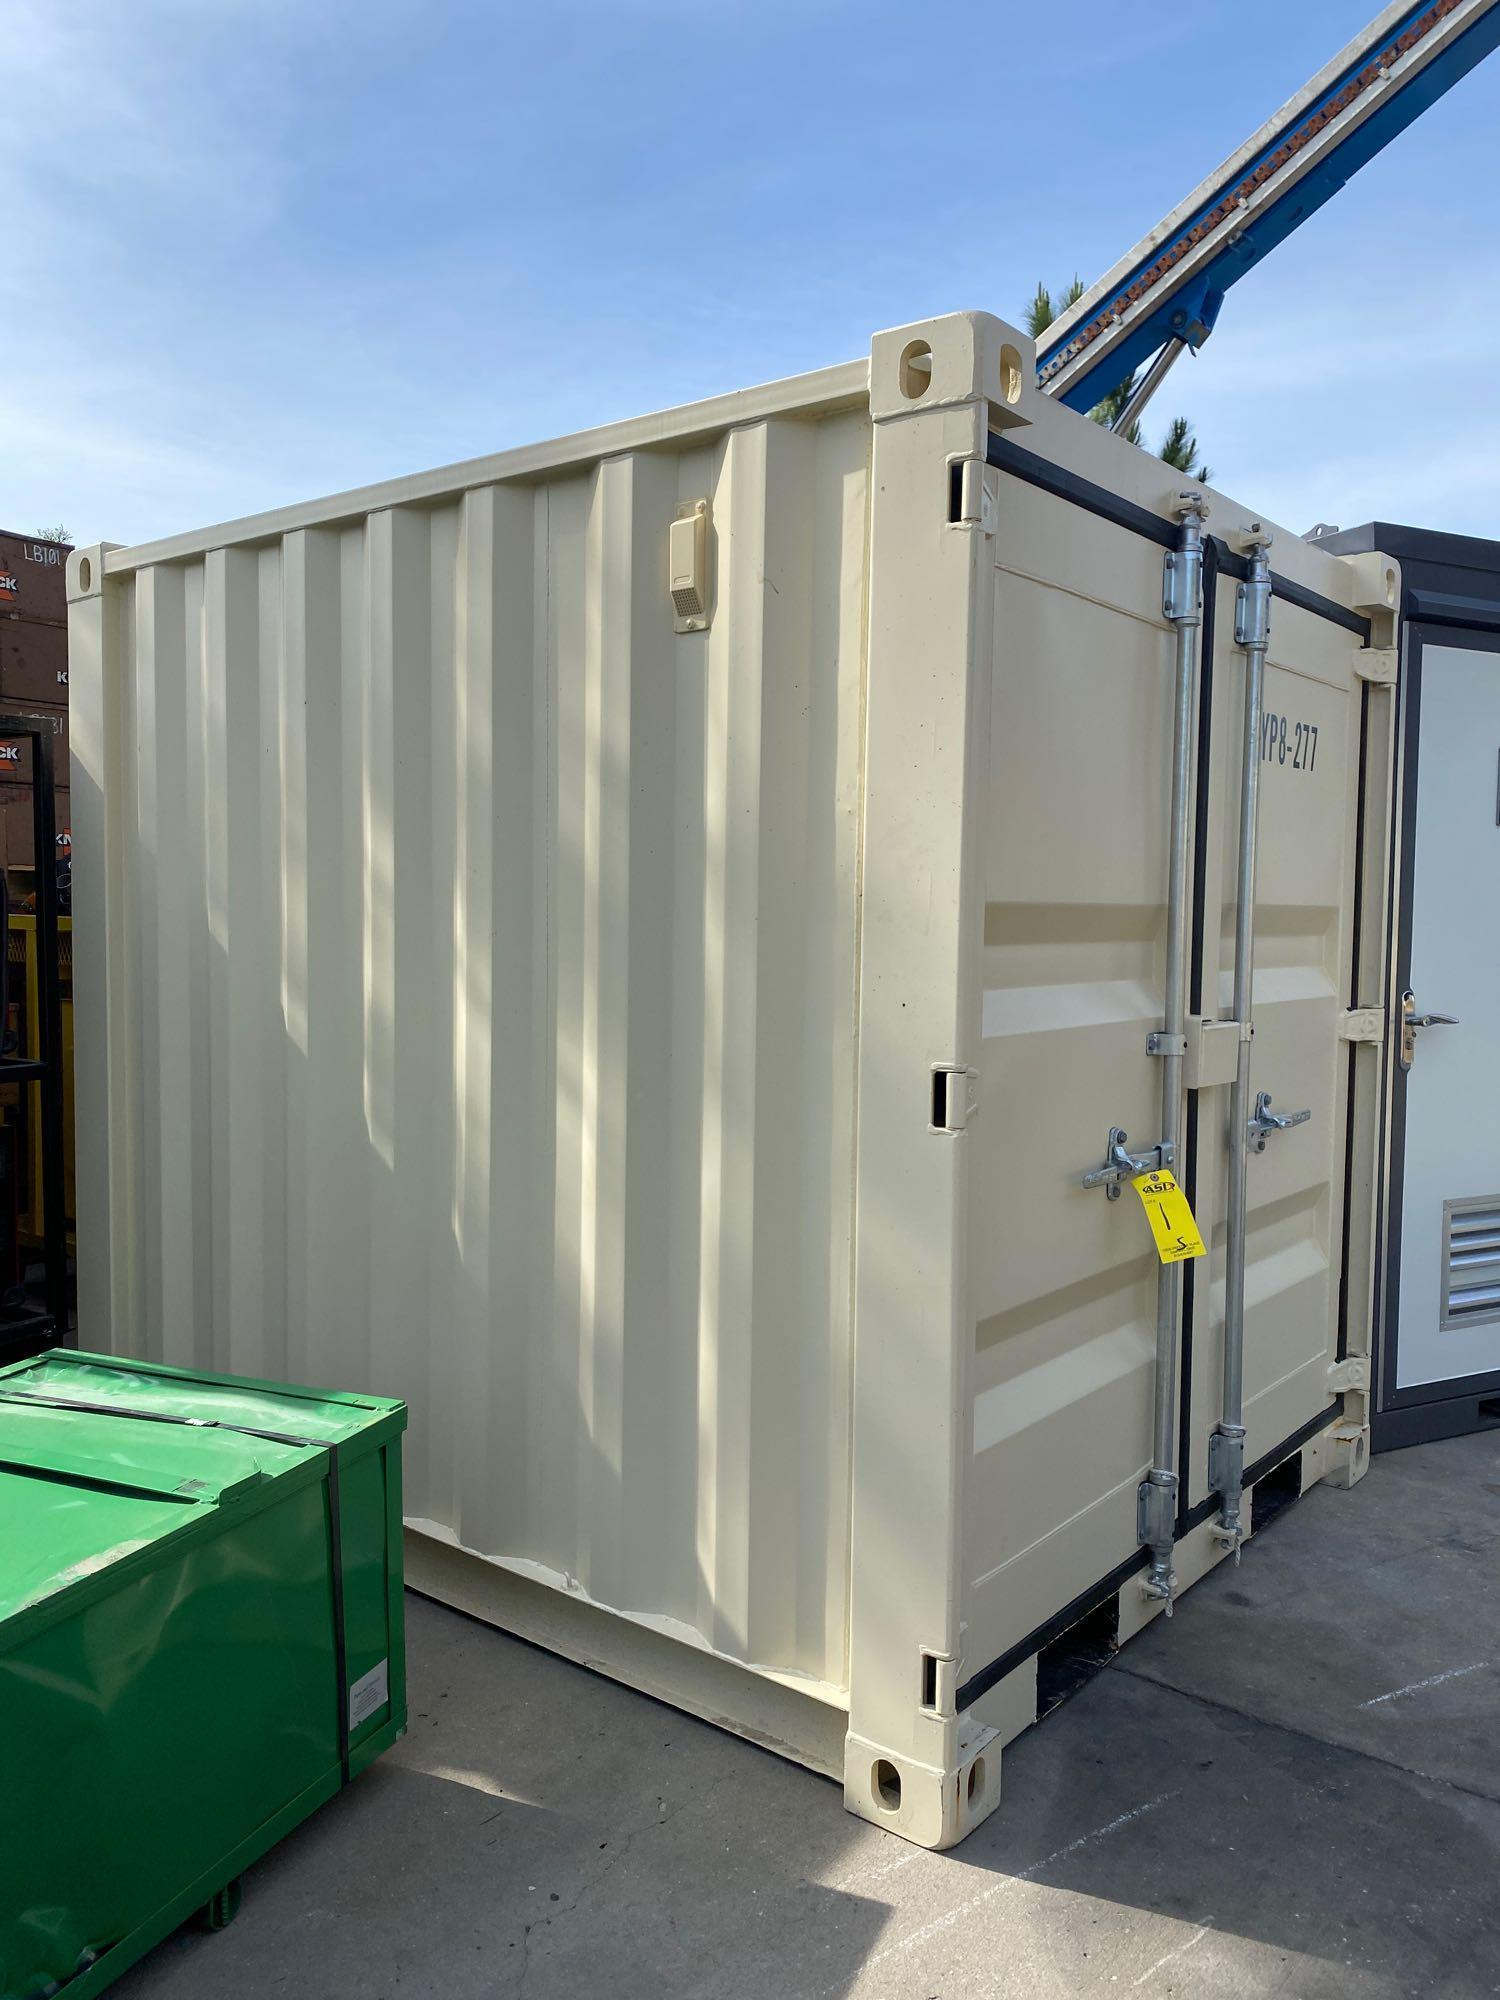 """UNUSED PORTABLE OFFICE/STORAGE CONTAINER WITH WINDOW AND SIDE DOOR, APPROX 77""""w 84""""t 98"""" deep - Image 3 of 6"""